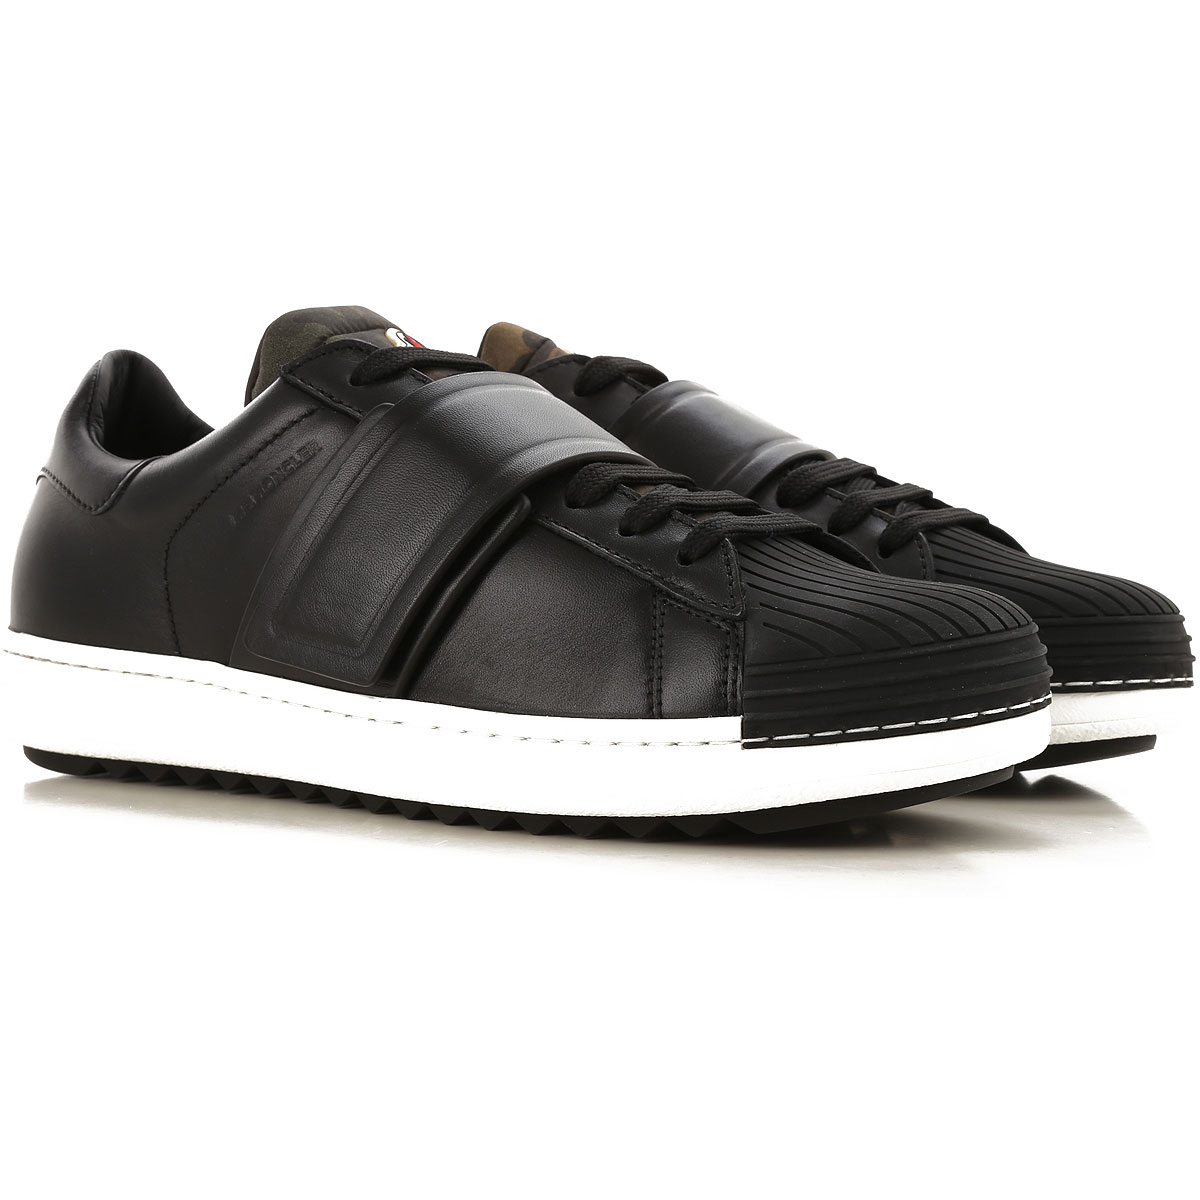 Pour Pas Homme Chaussures Mes Cher Baskets Moncler v8zqwn5 484897bab10